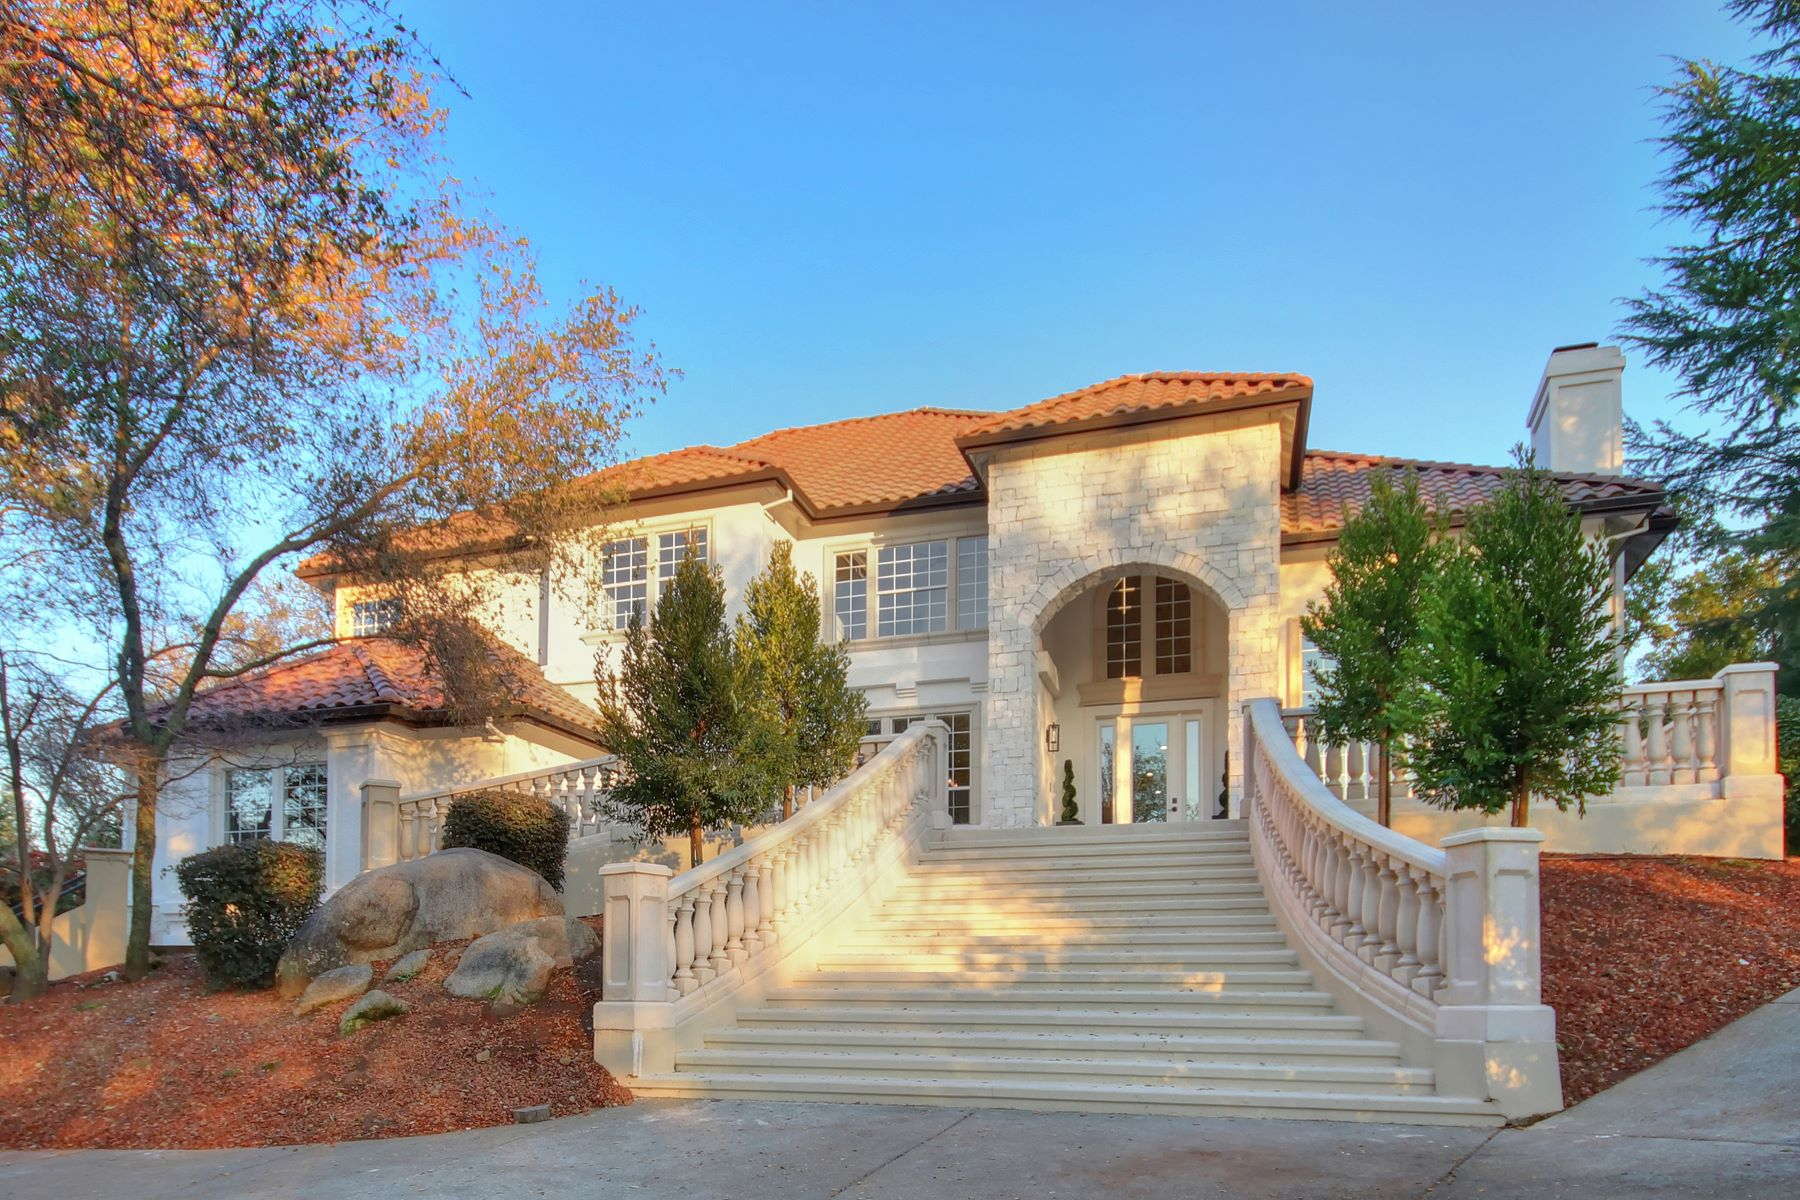 Single Family Home for Active at 9040 Los Lagos Circle, Granite Bay, CA 95746 9040 Los Lagos Circle Granite Bay, California 95746 United States